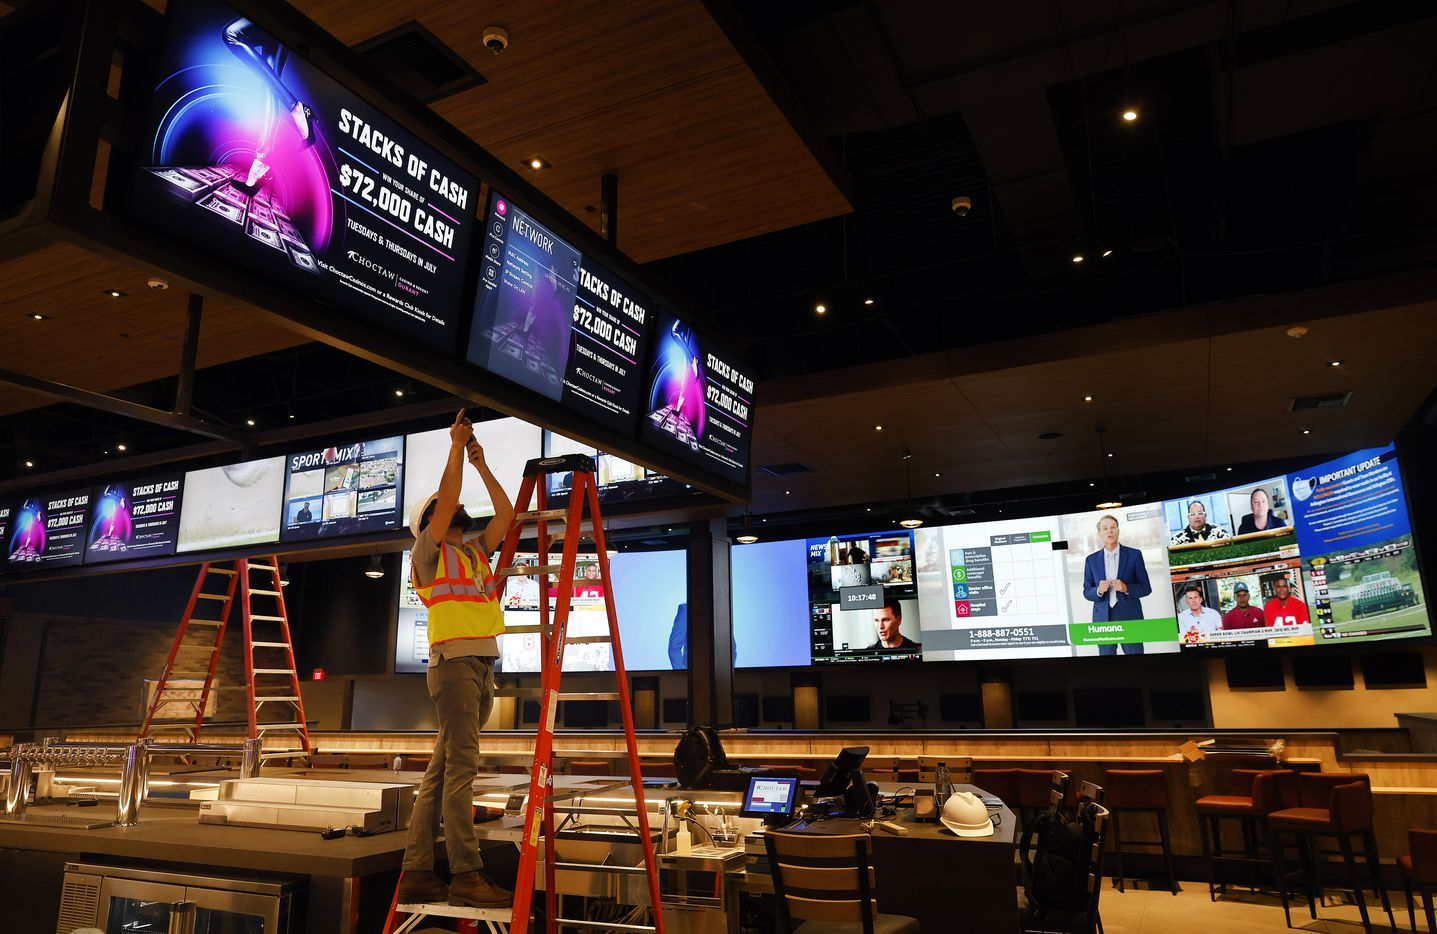 A worker puts the finishing touches on a bank of video screens hanging over The League casino sports bar.